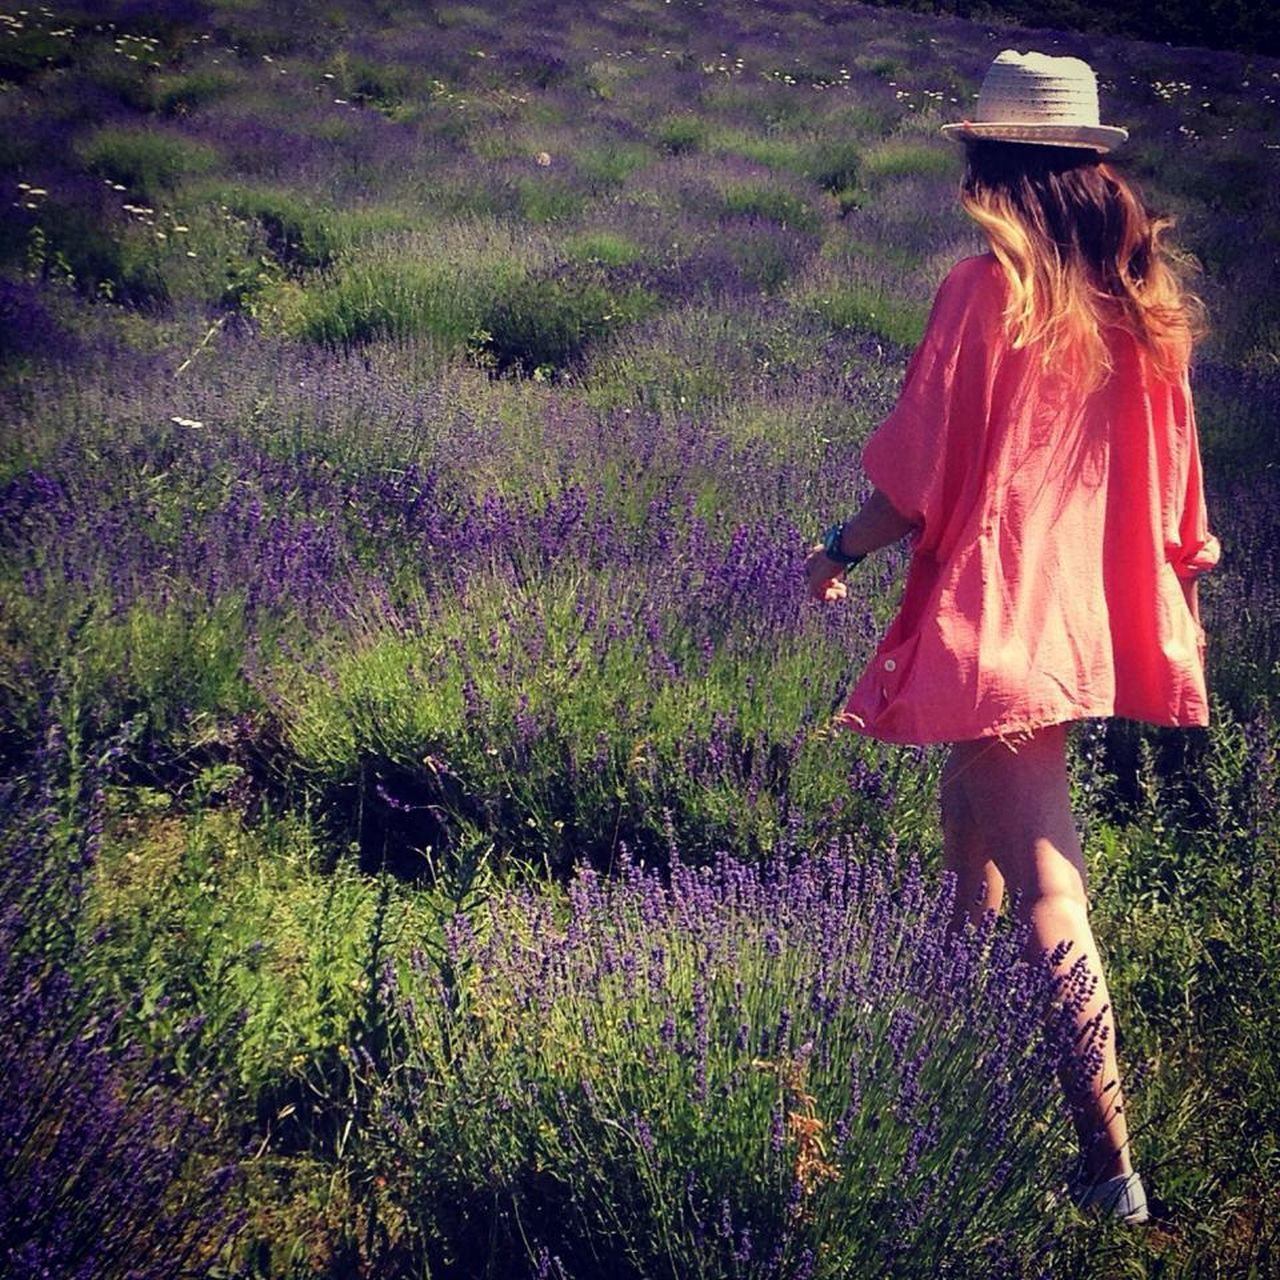 purple, flower, growth, lavender, field, rear view, nature, plant, one person, beauty in nature, real people, agriculture, outdoors, lifestyles, day, adult, people